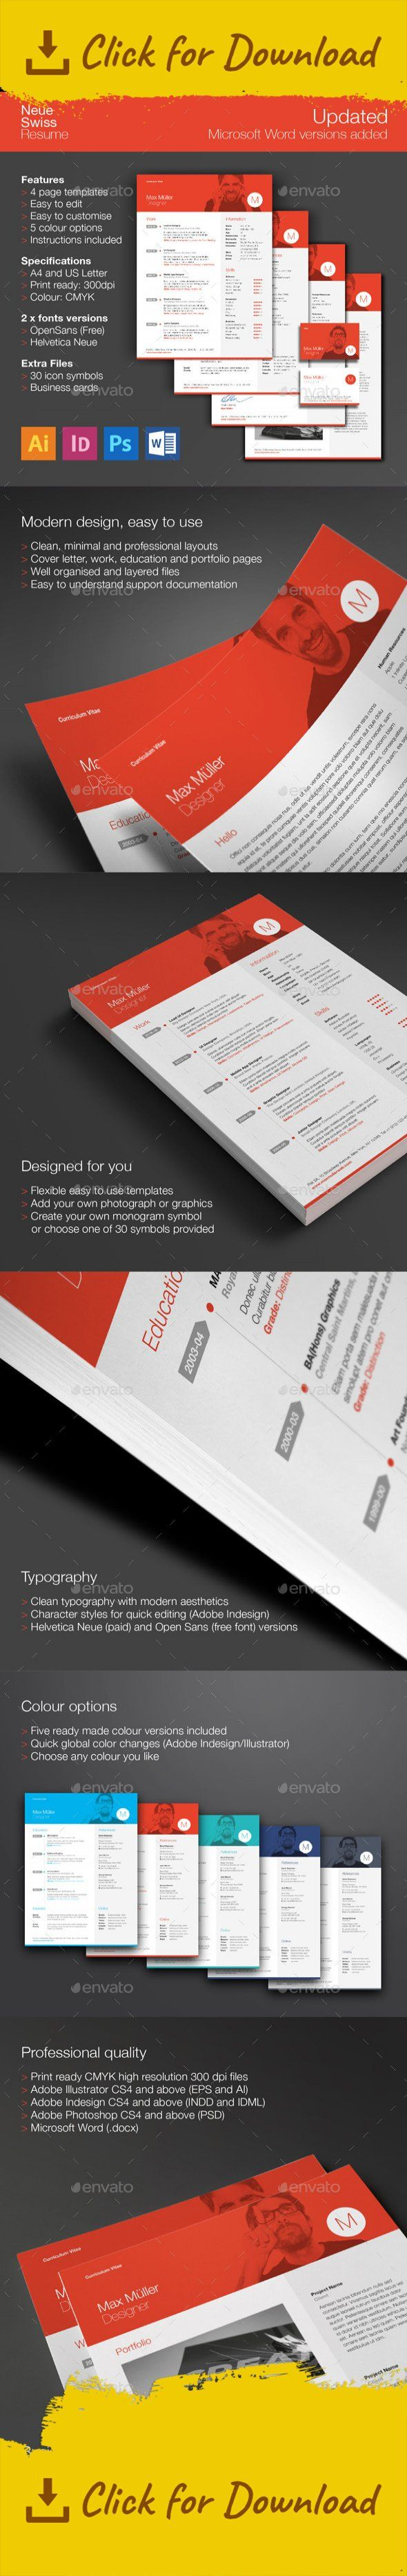 45 best Resumes images on Pinterest | Cv template, Design resume and ...